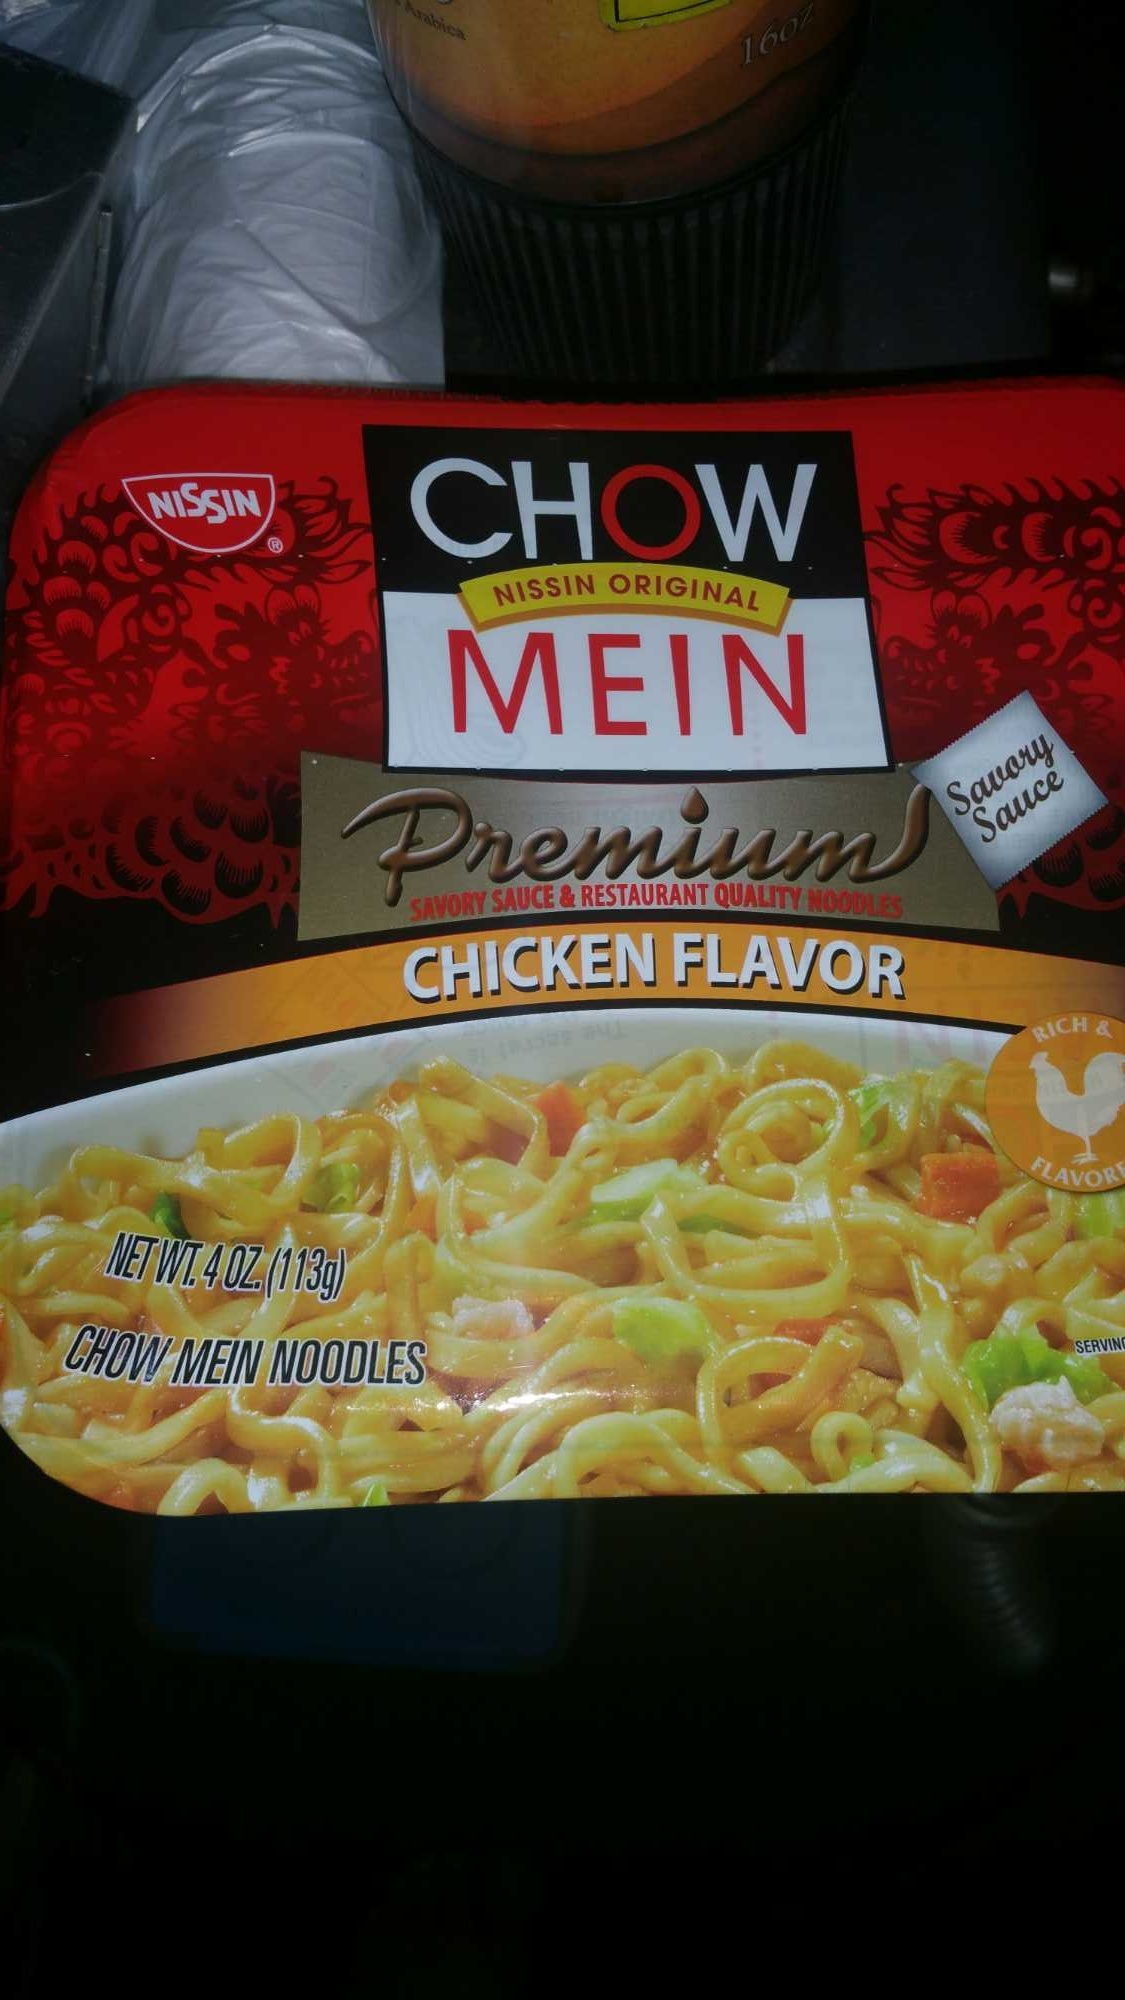 Chow mein chicken flavor - Product